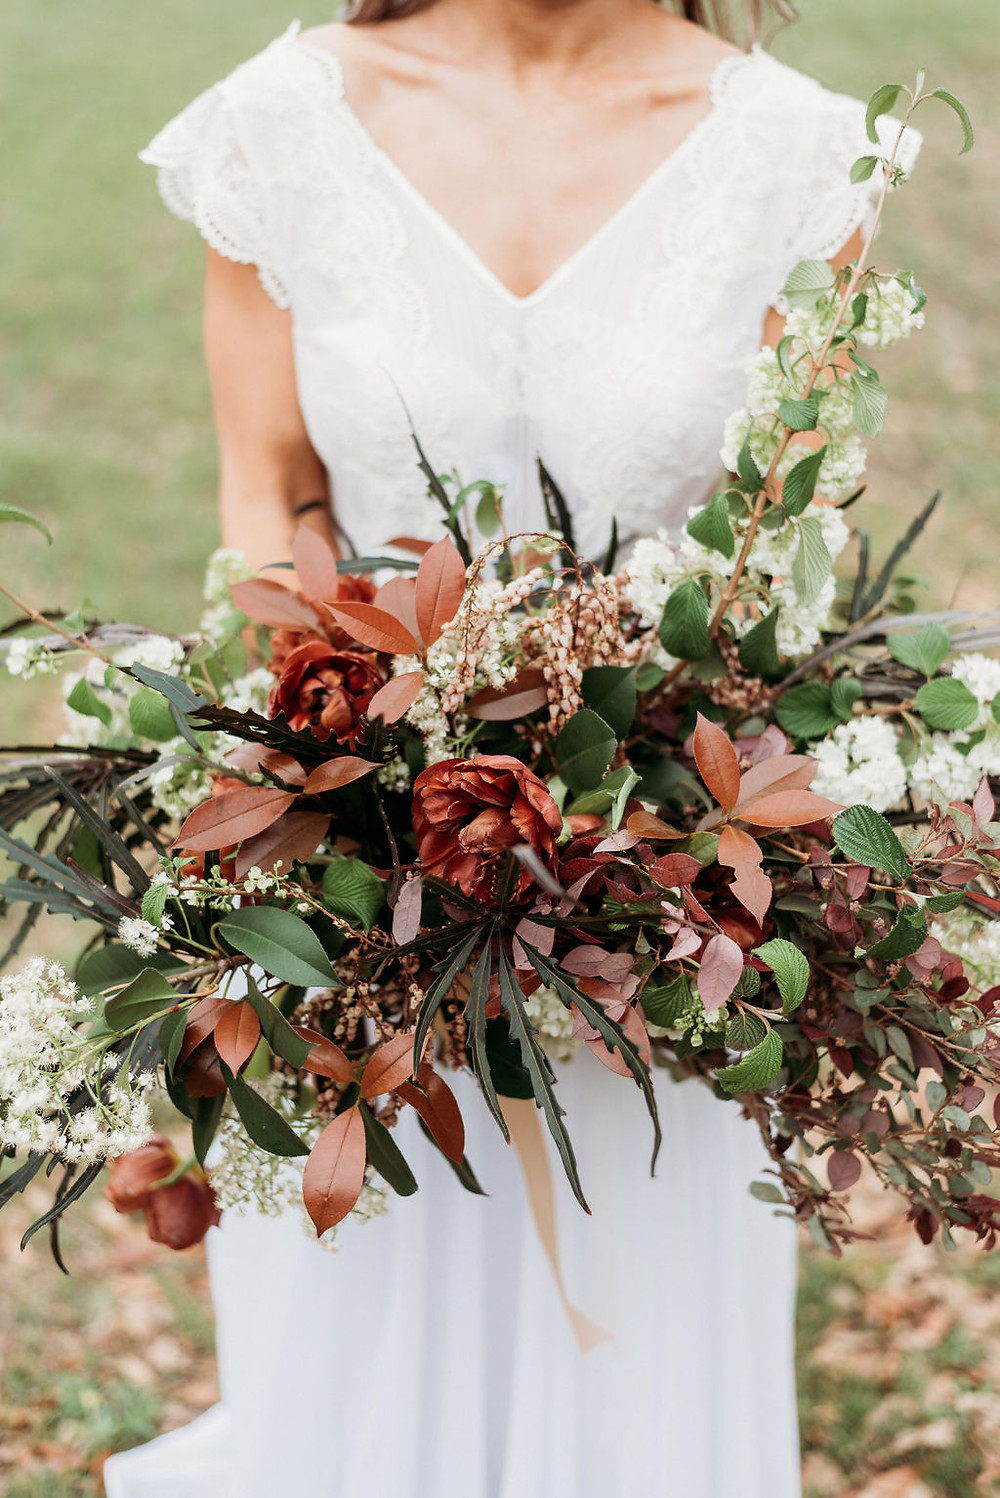 bridal portrait with her bridal bouquet from wow factor floral for her Austin elopement. you cannot see bride's face.